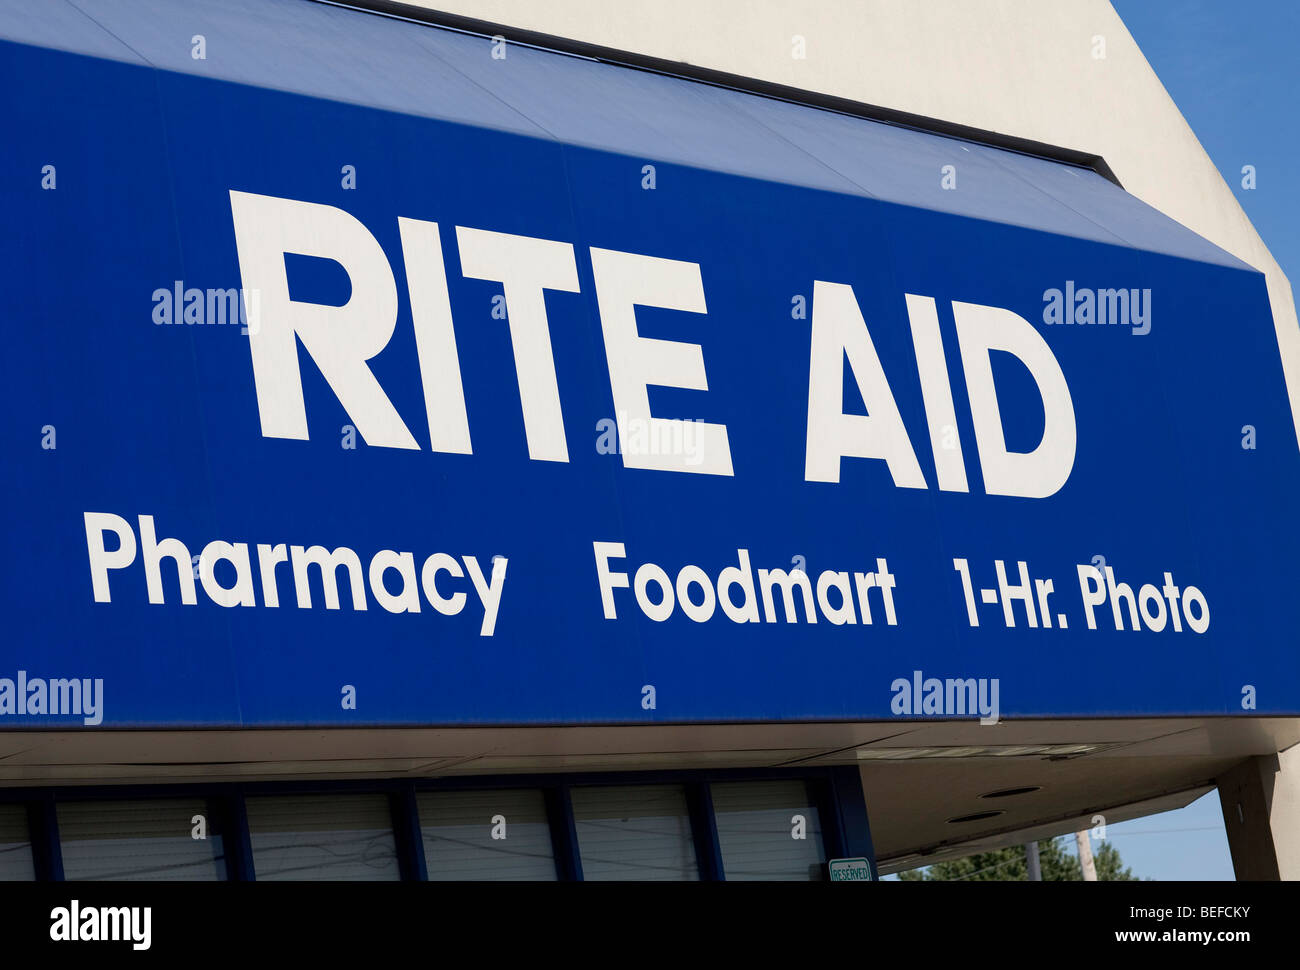 A Rite Aid Pharmacy location in Maryland. - Stock Image